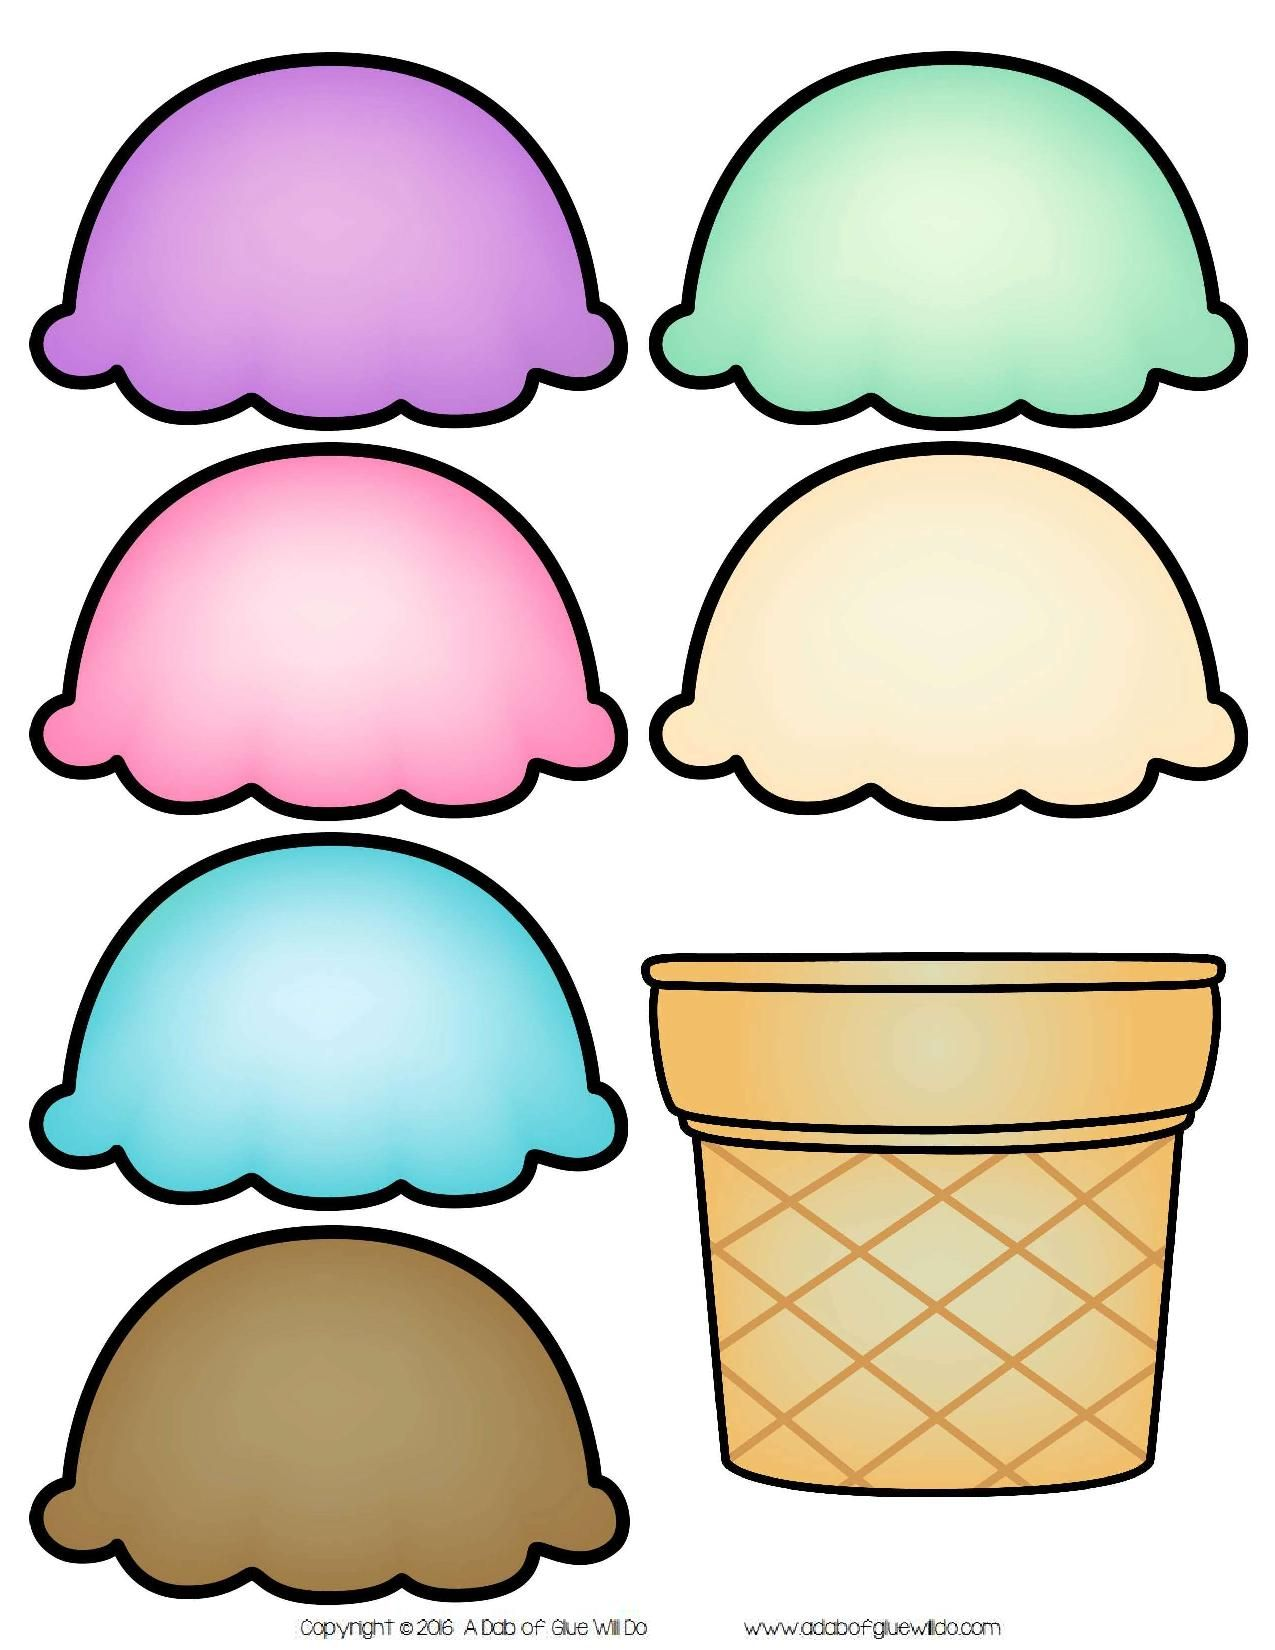 Ice Cream Scoops Name Activity Each Student Is Given An